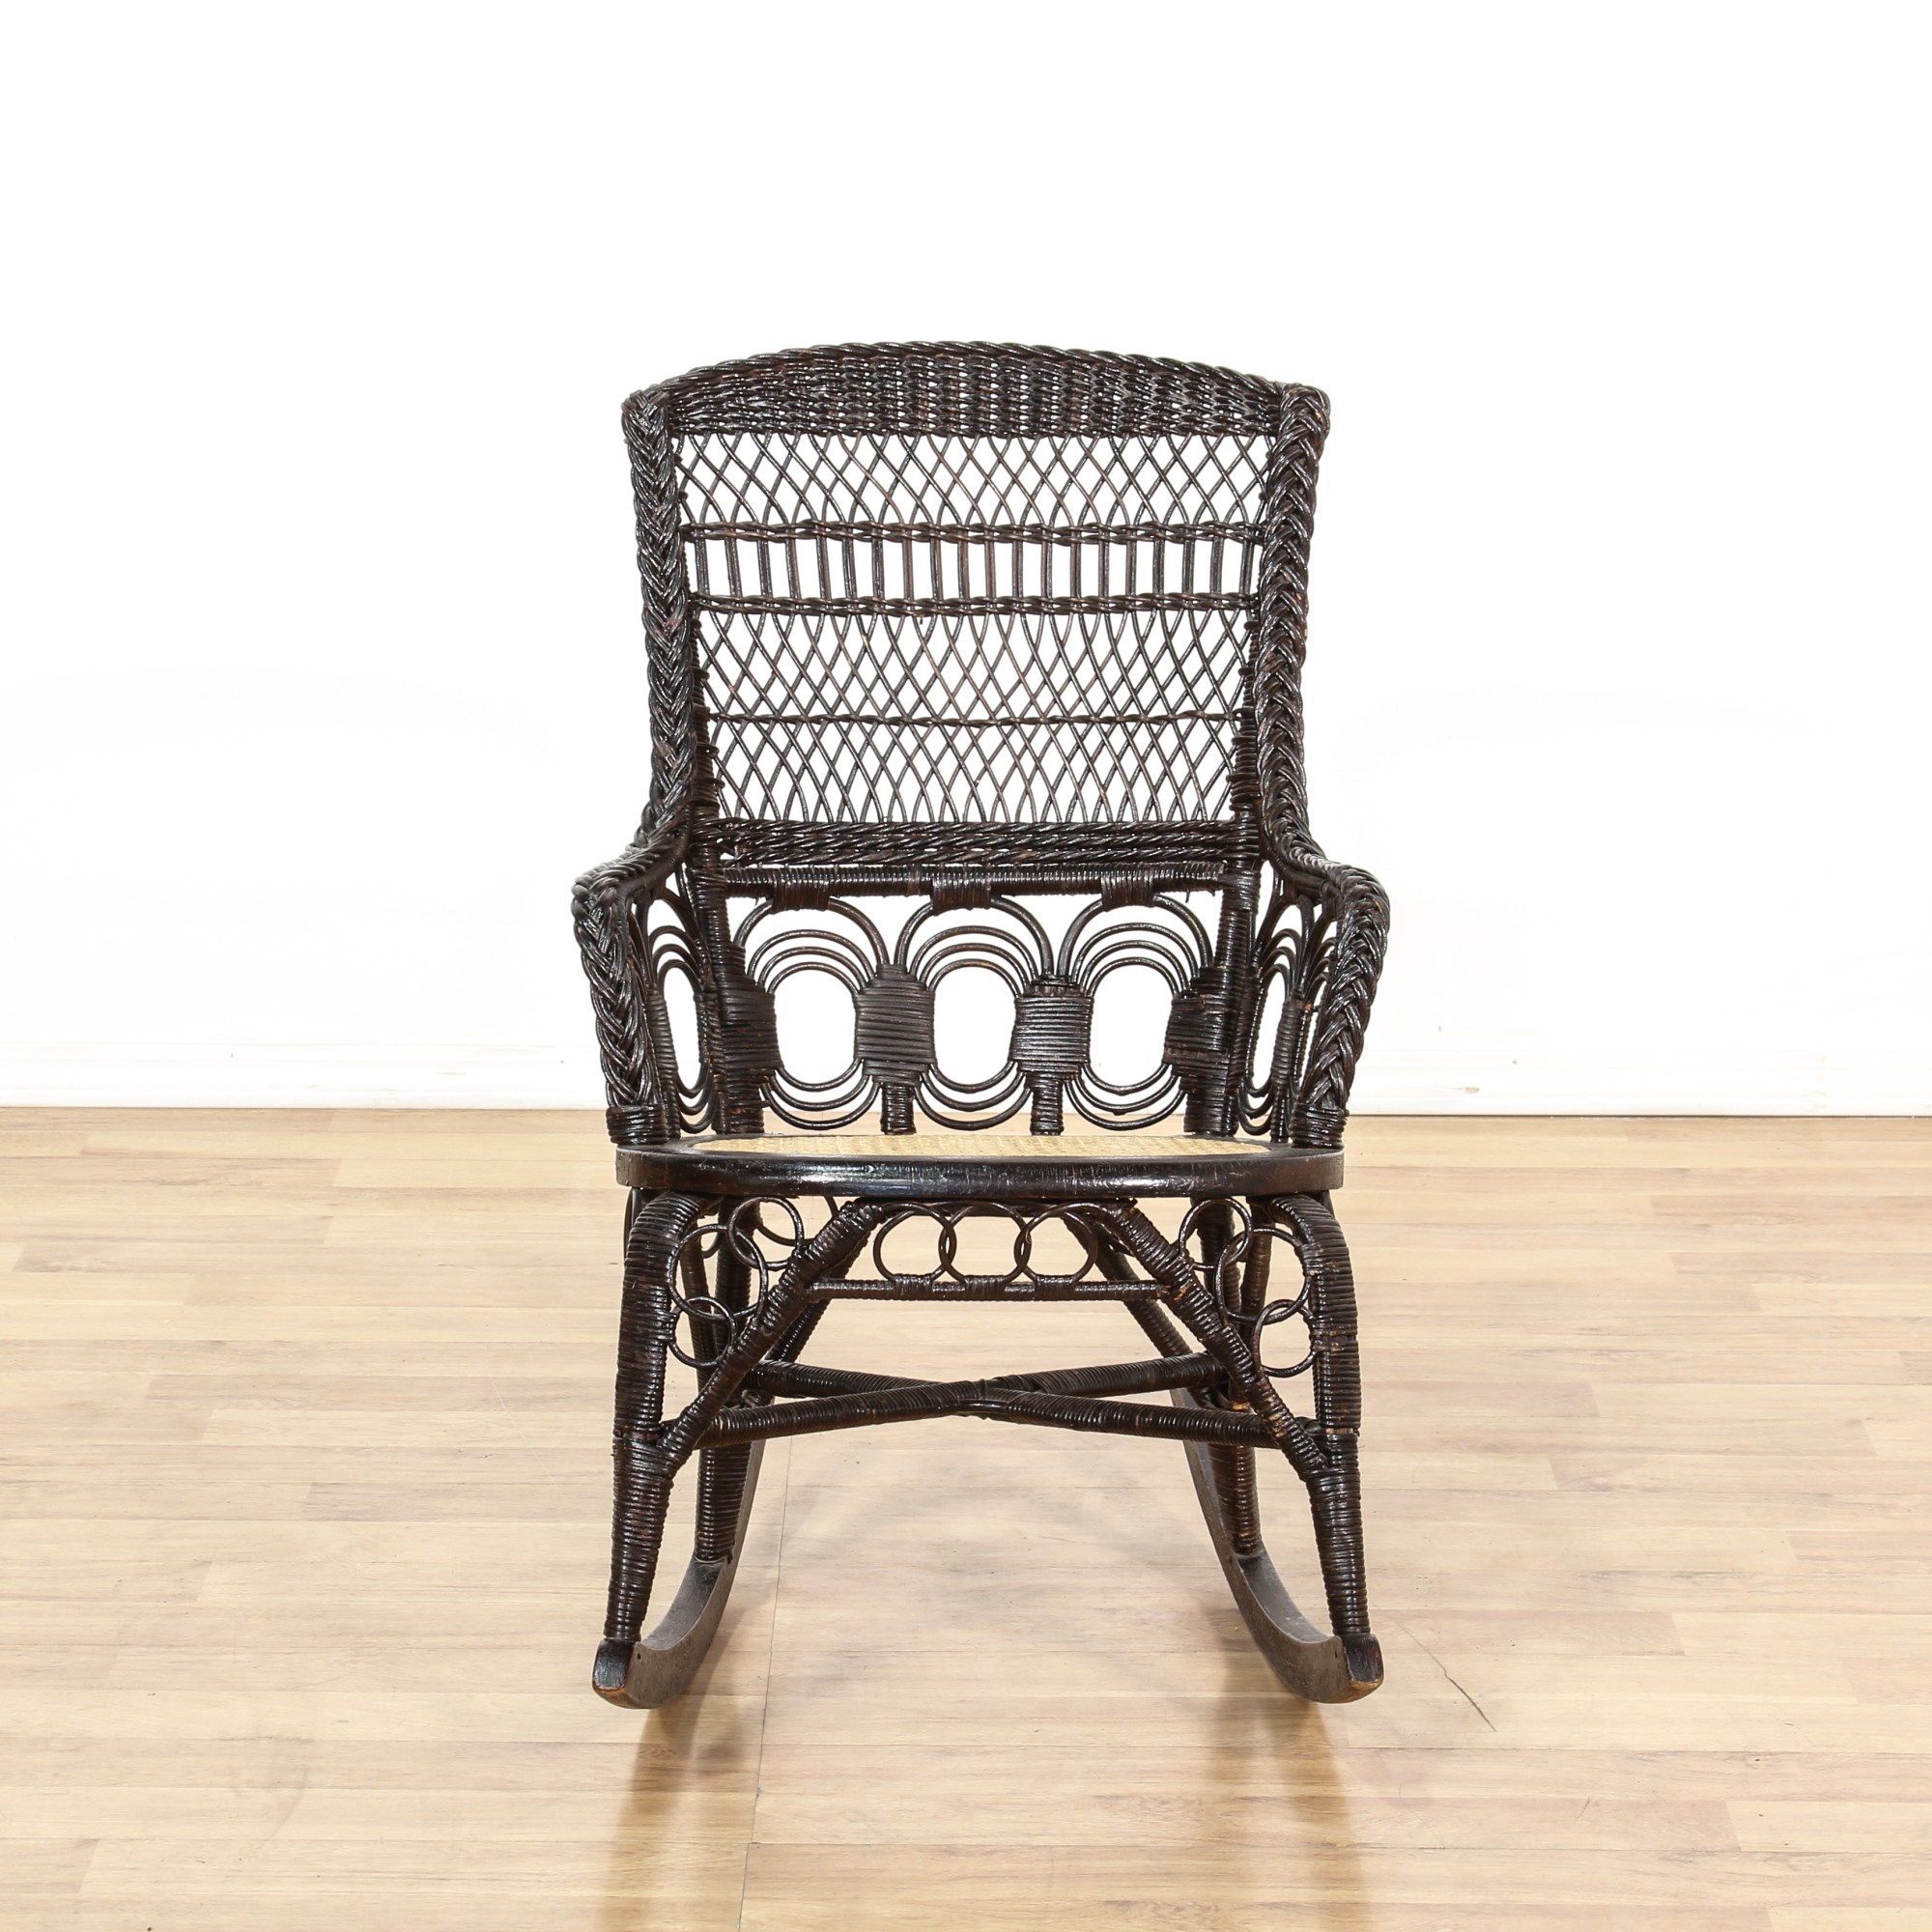 Black Wicker Rocking Chairs Black Wicker Rattan Cane Seat Rocking Chair Loveseat